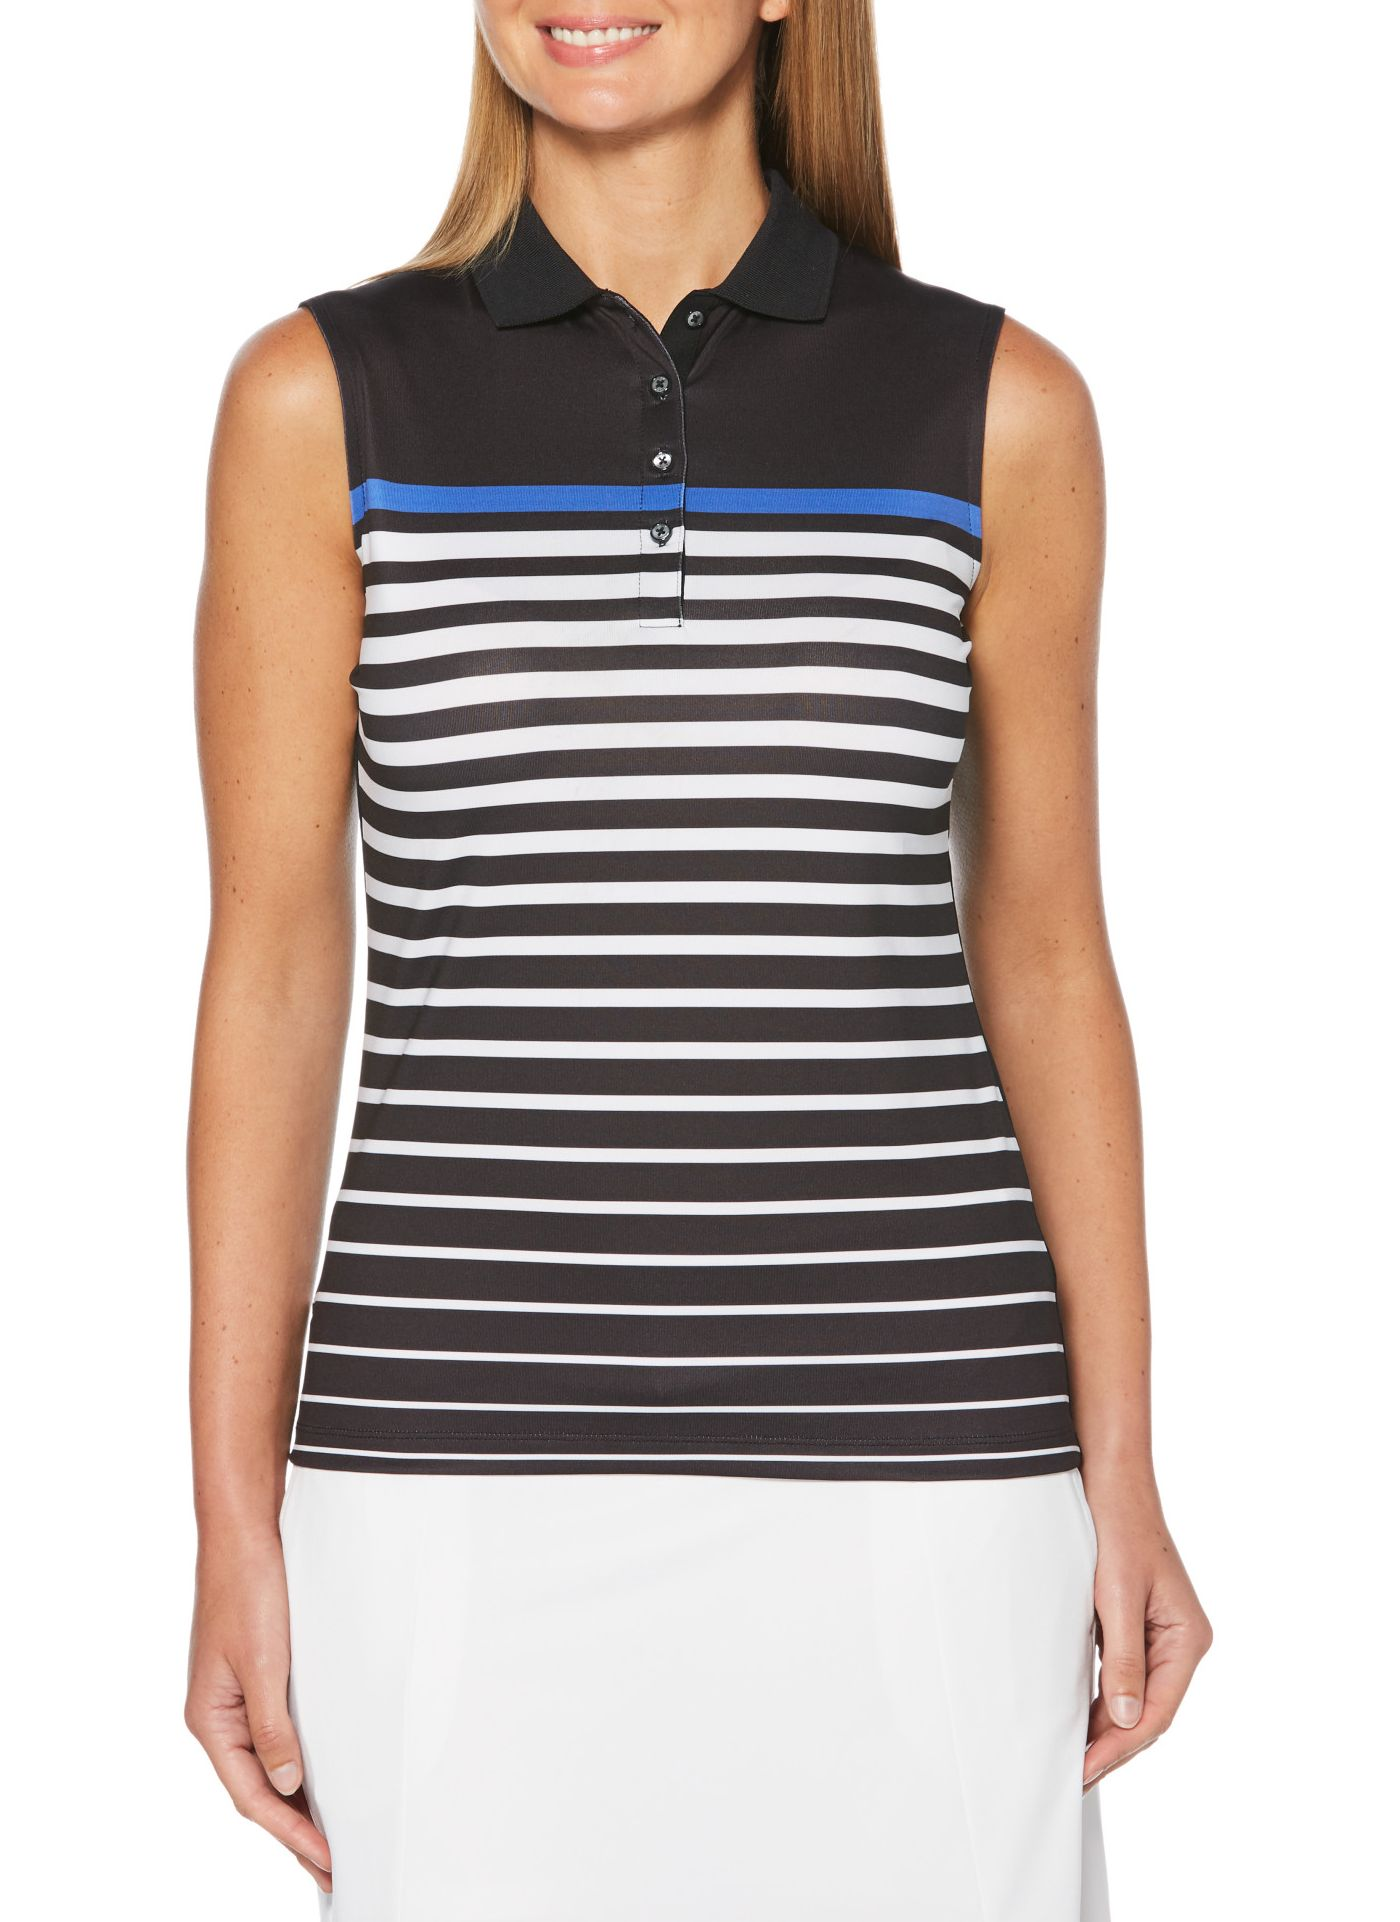 Callaway Women's Fast Track Sleeveless Stripe Golf Polo